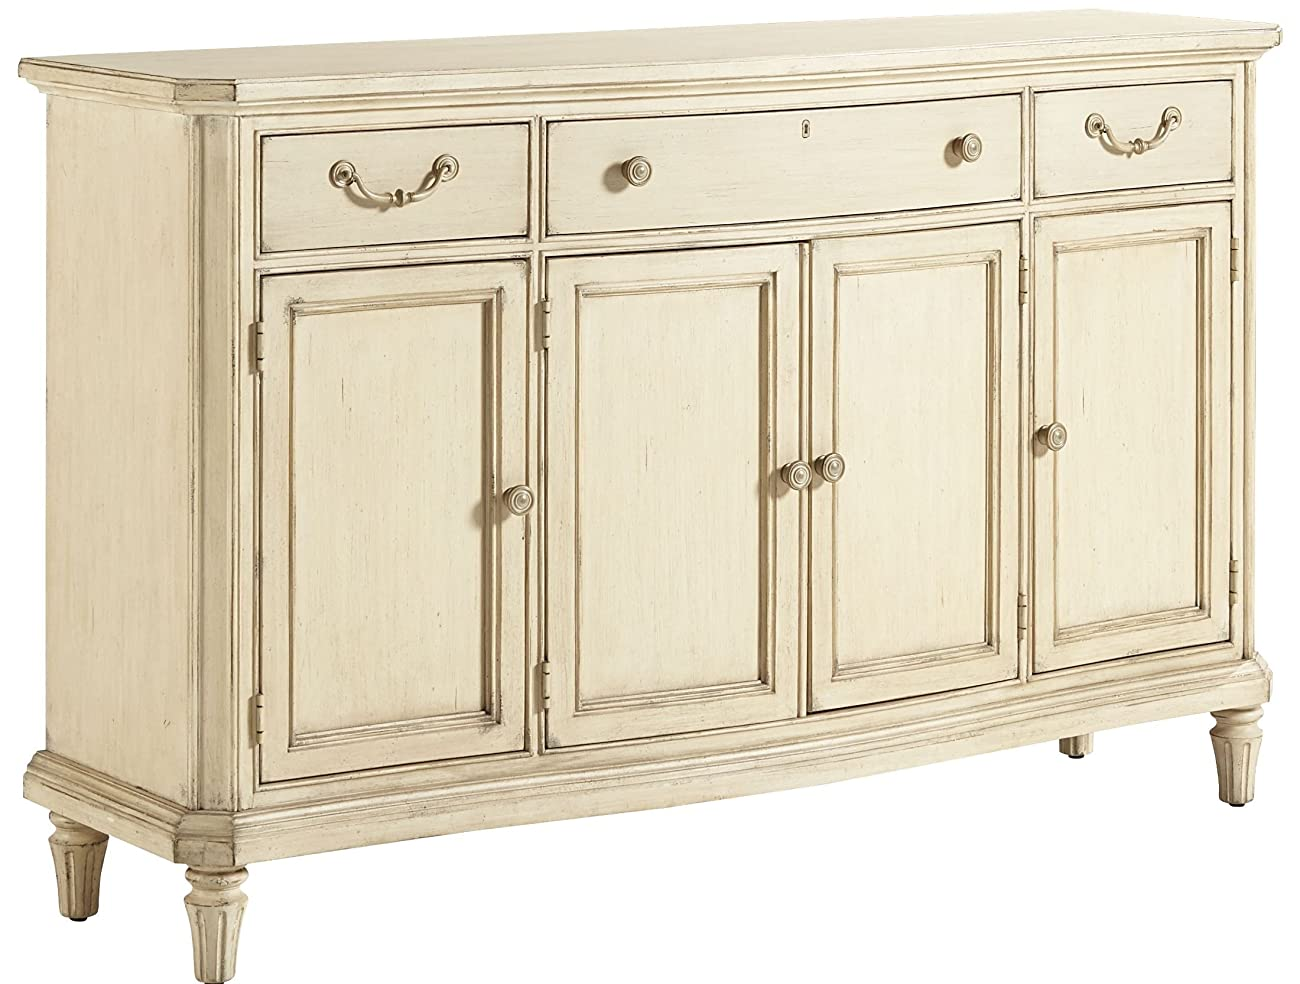 Stanley 007-21-05 European Cottage Buffet, Vintage White Finish 0